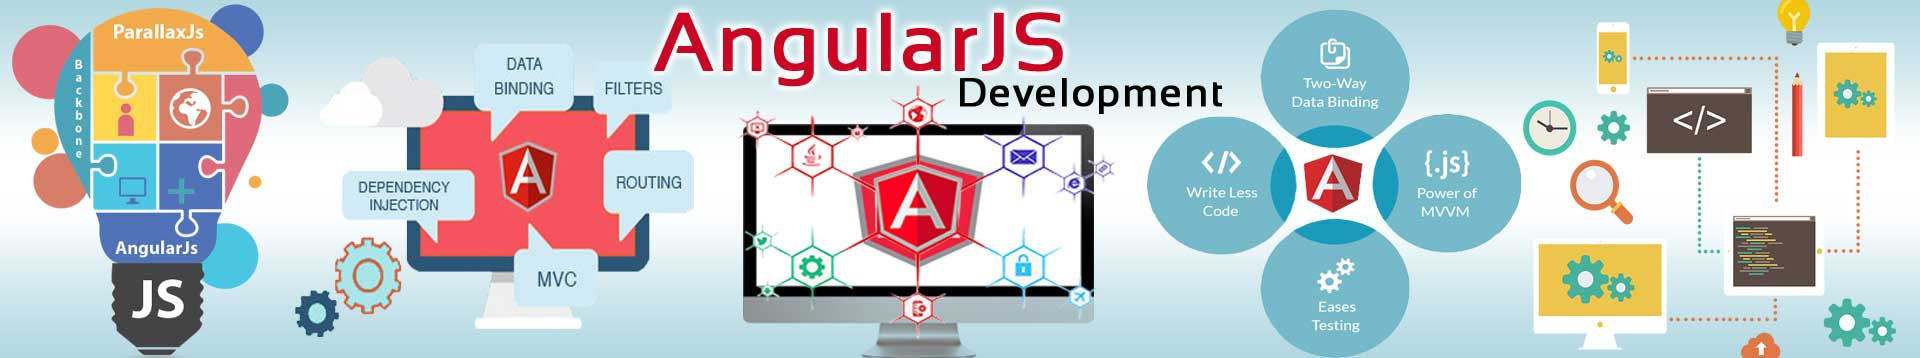 Advantages of Developing Single Page Web Applications using AngularJS - Image 1